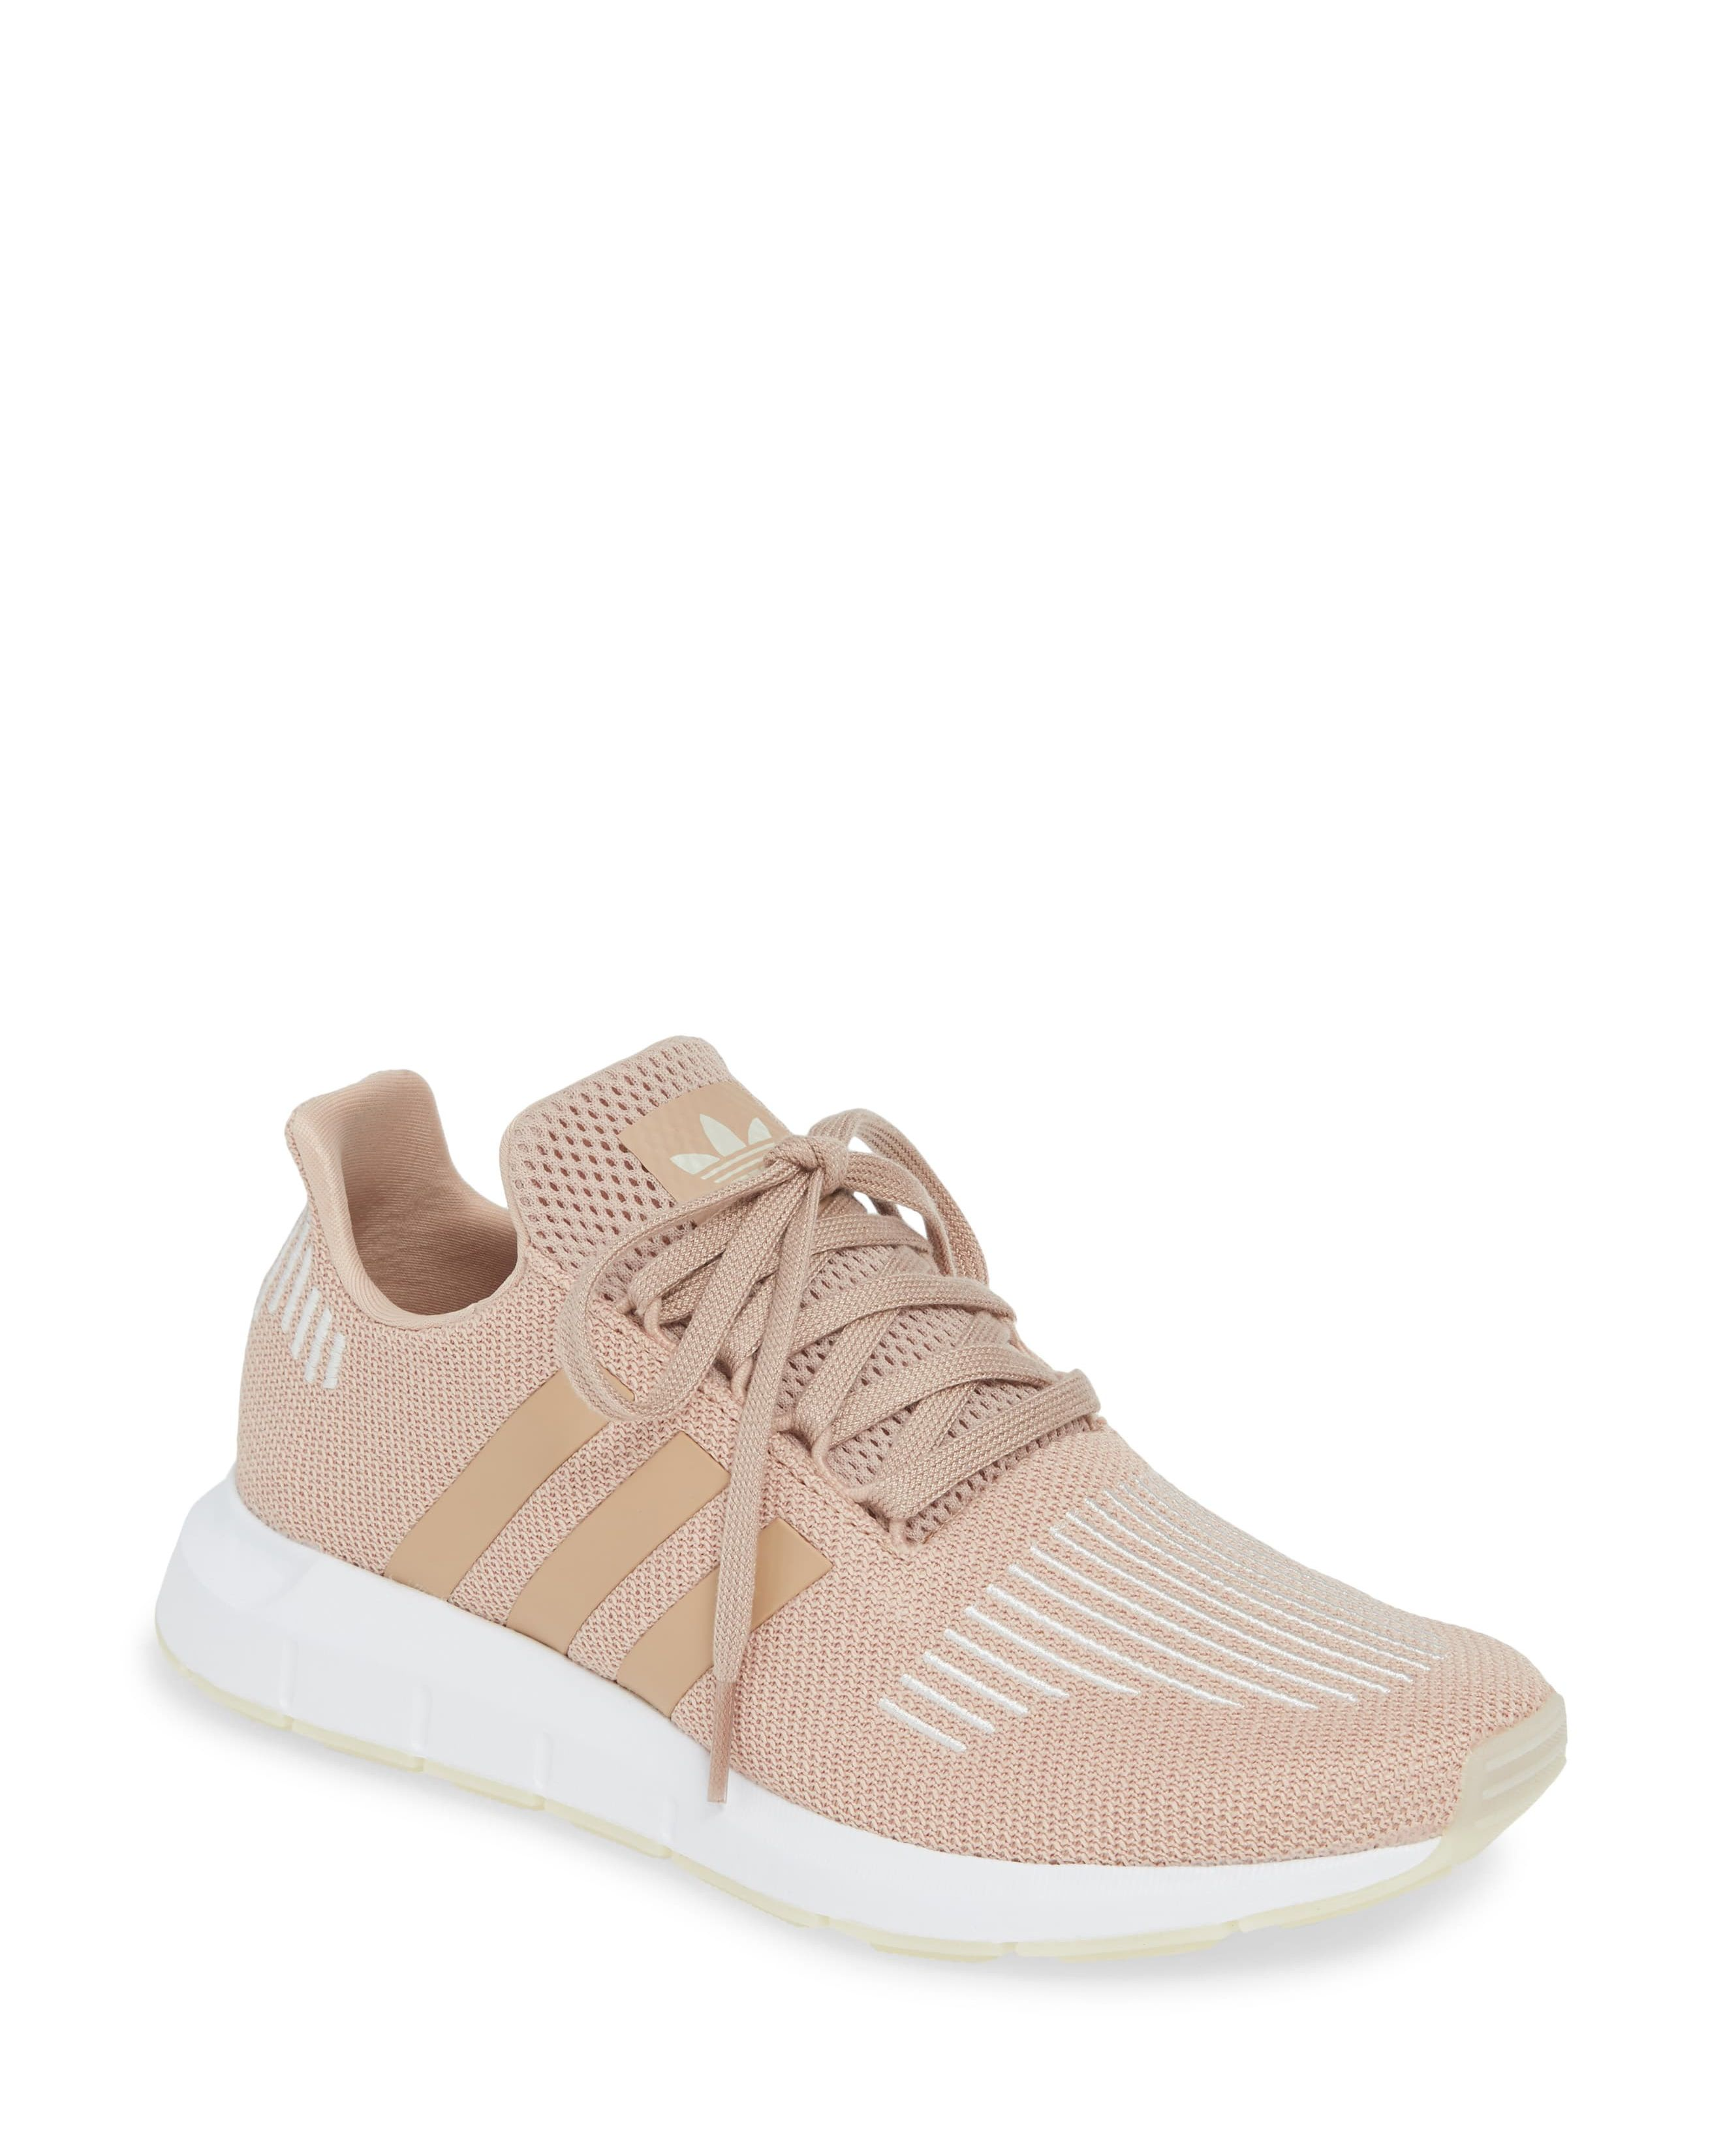 Swift Run Sneaker Adidas nordstrom.com $85.00 SHOP NOW Inspired by the Adidas archive, these stretchy, cushiony sneakers are as close as it gets to walking on clouds.